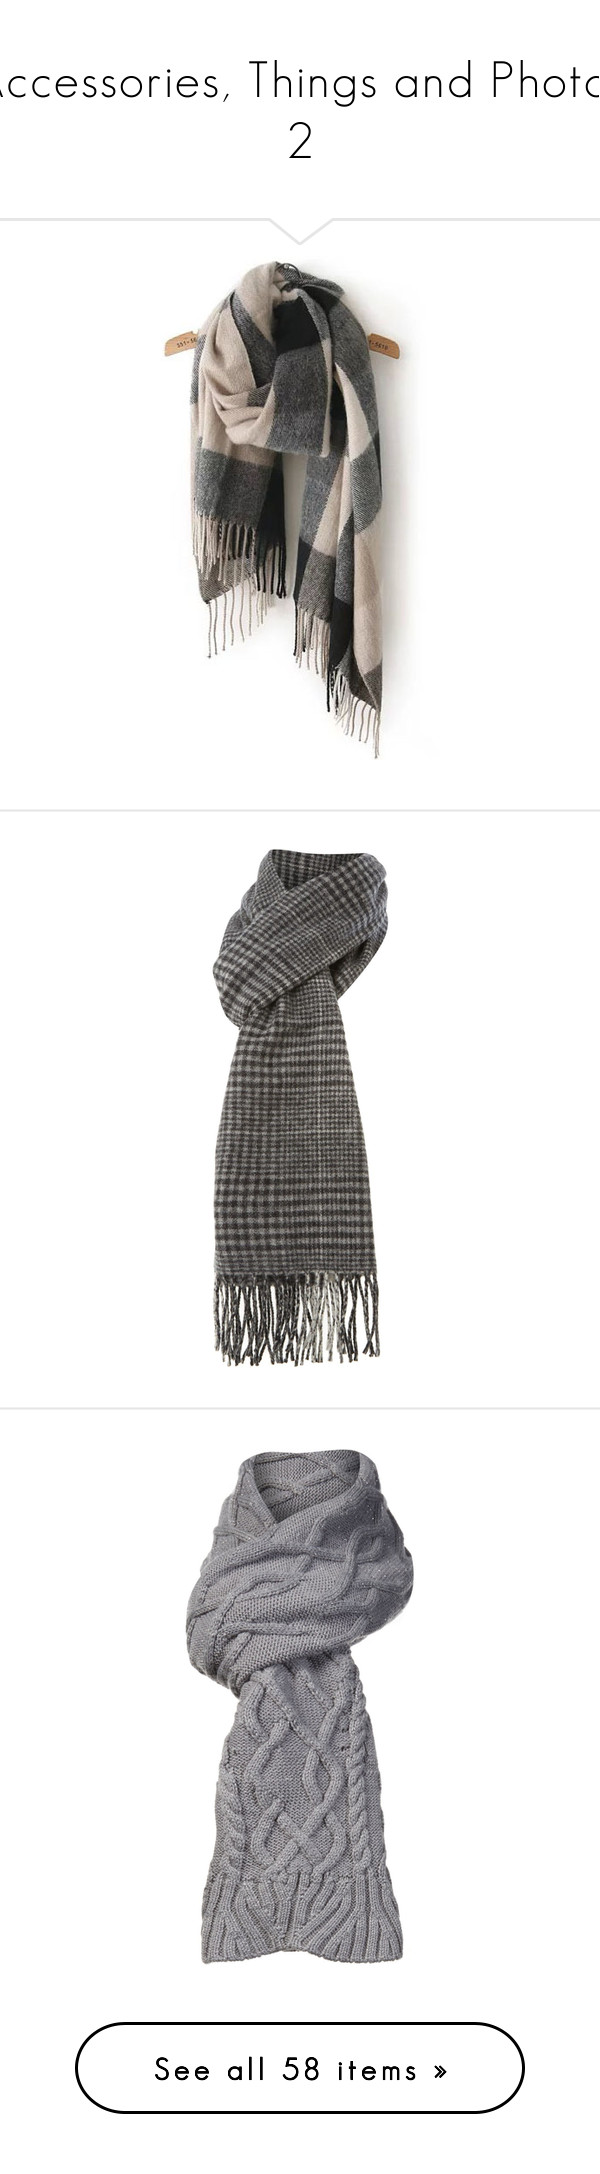 """""""Accessories, Things and Photos 2"""" by myfanficmanips ❤ liked on Polyvore featuring accessories, scarves, multicolor, grey scarves, gray scarves, tartan scarves, tartan plaid shawl, colorful scarves, black and scarves & wraps"""